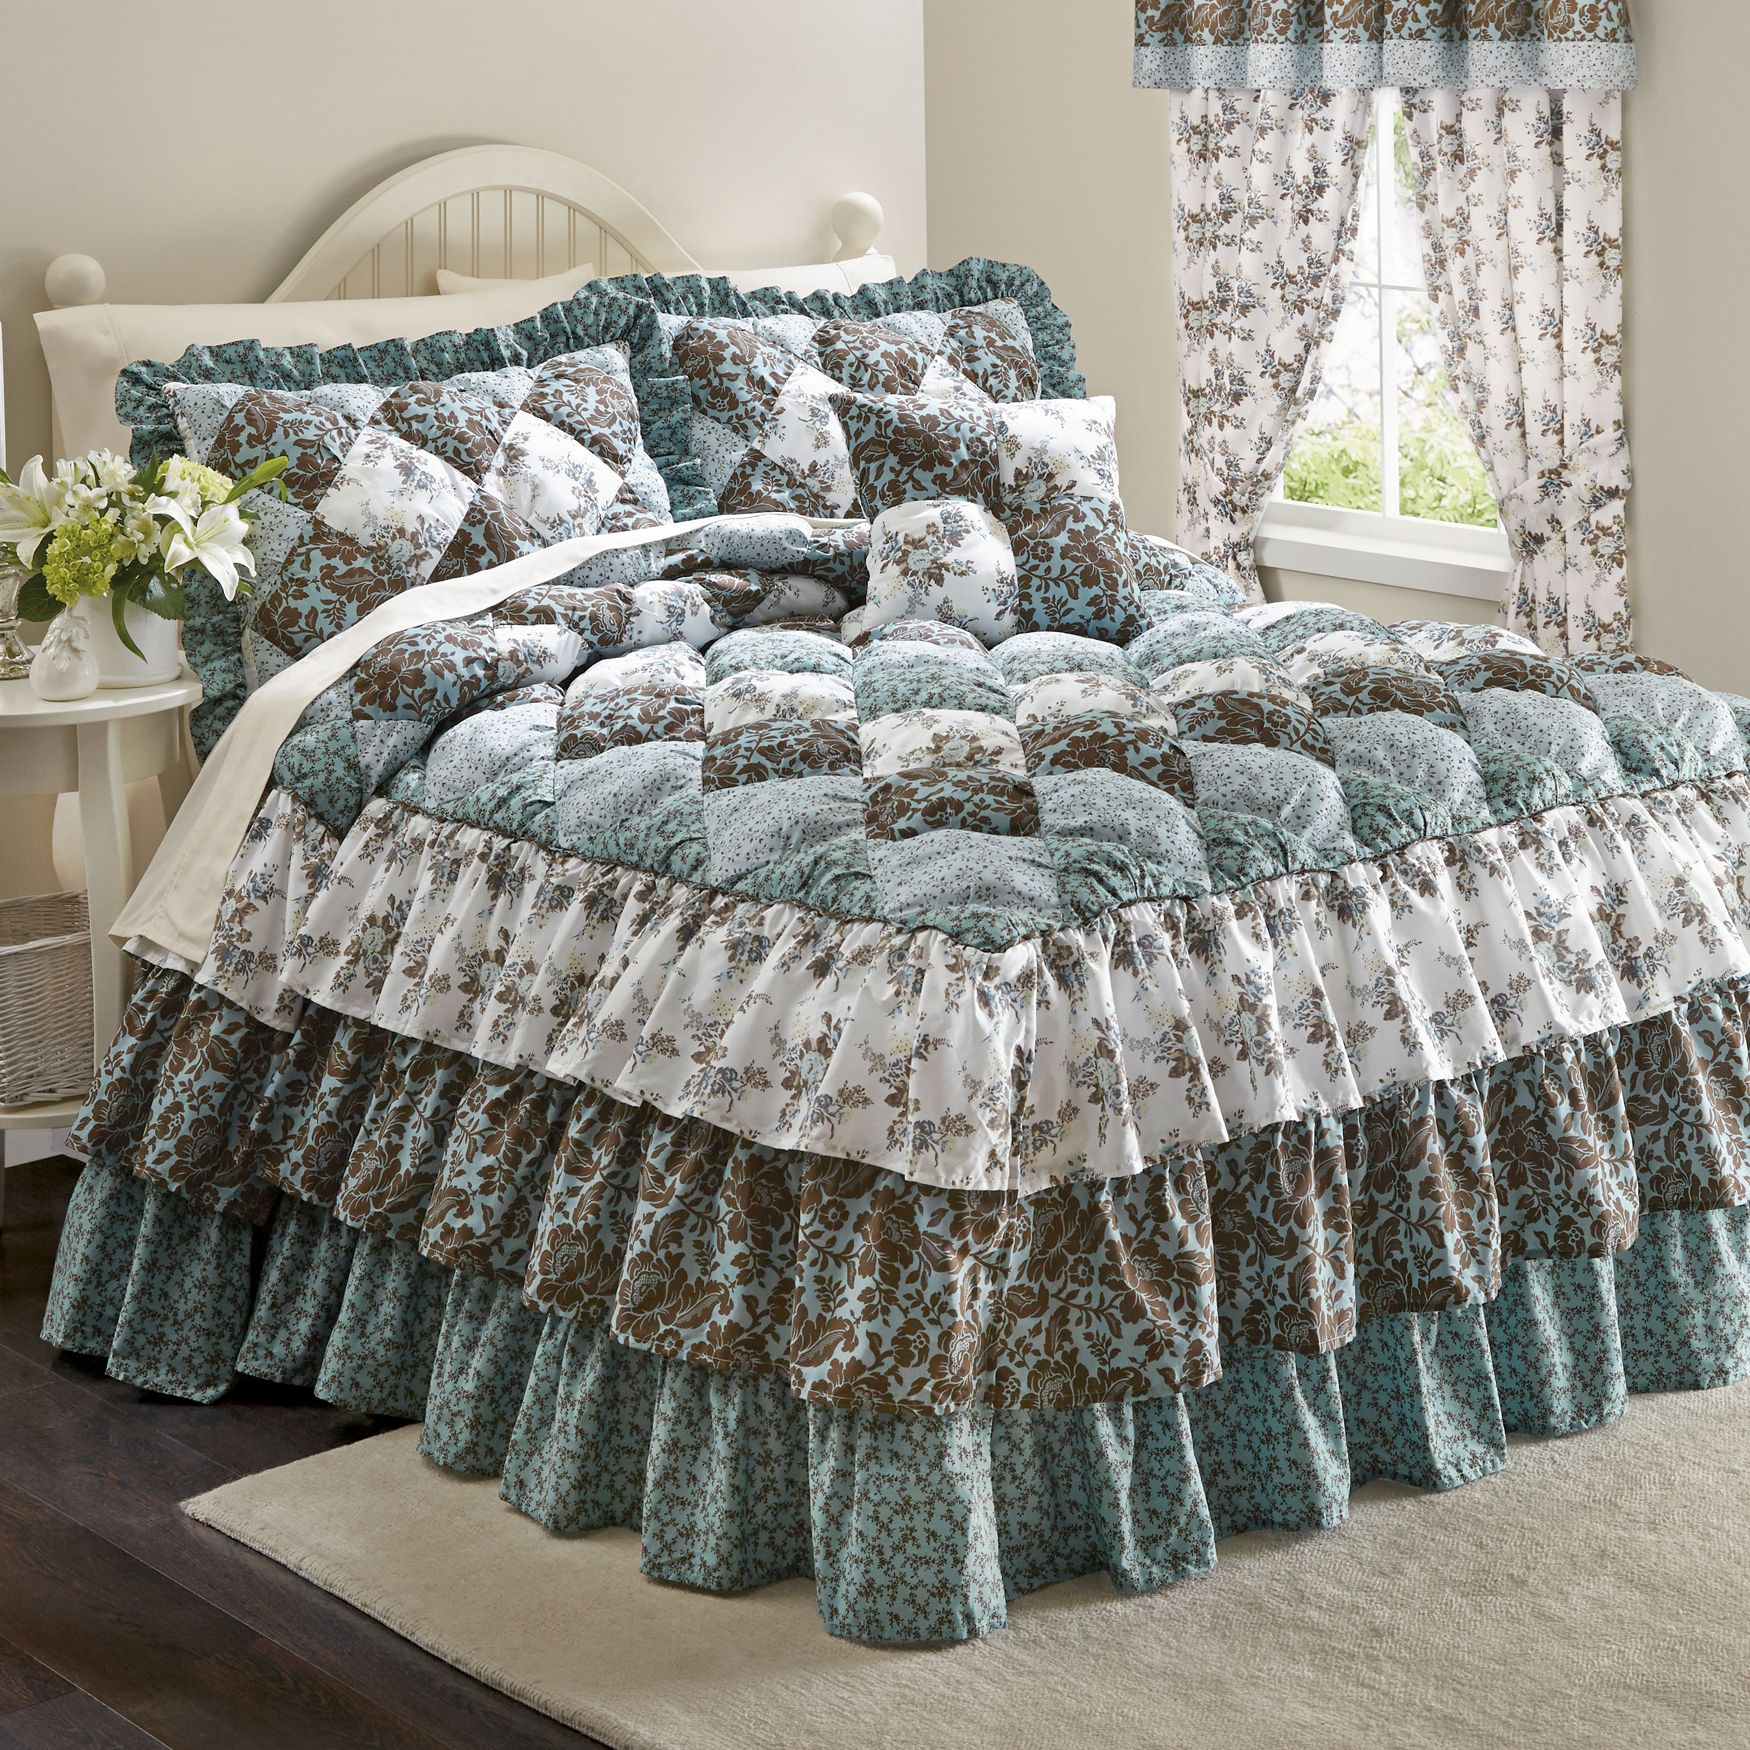 Alexis Puff Top Printed Bedspread More Decoracao De Casa